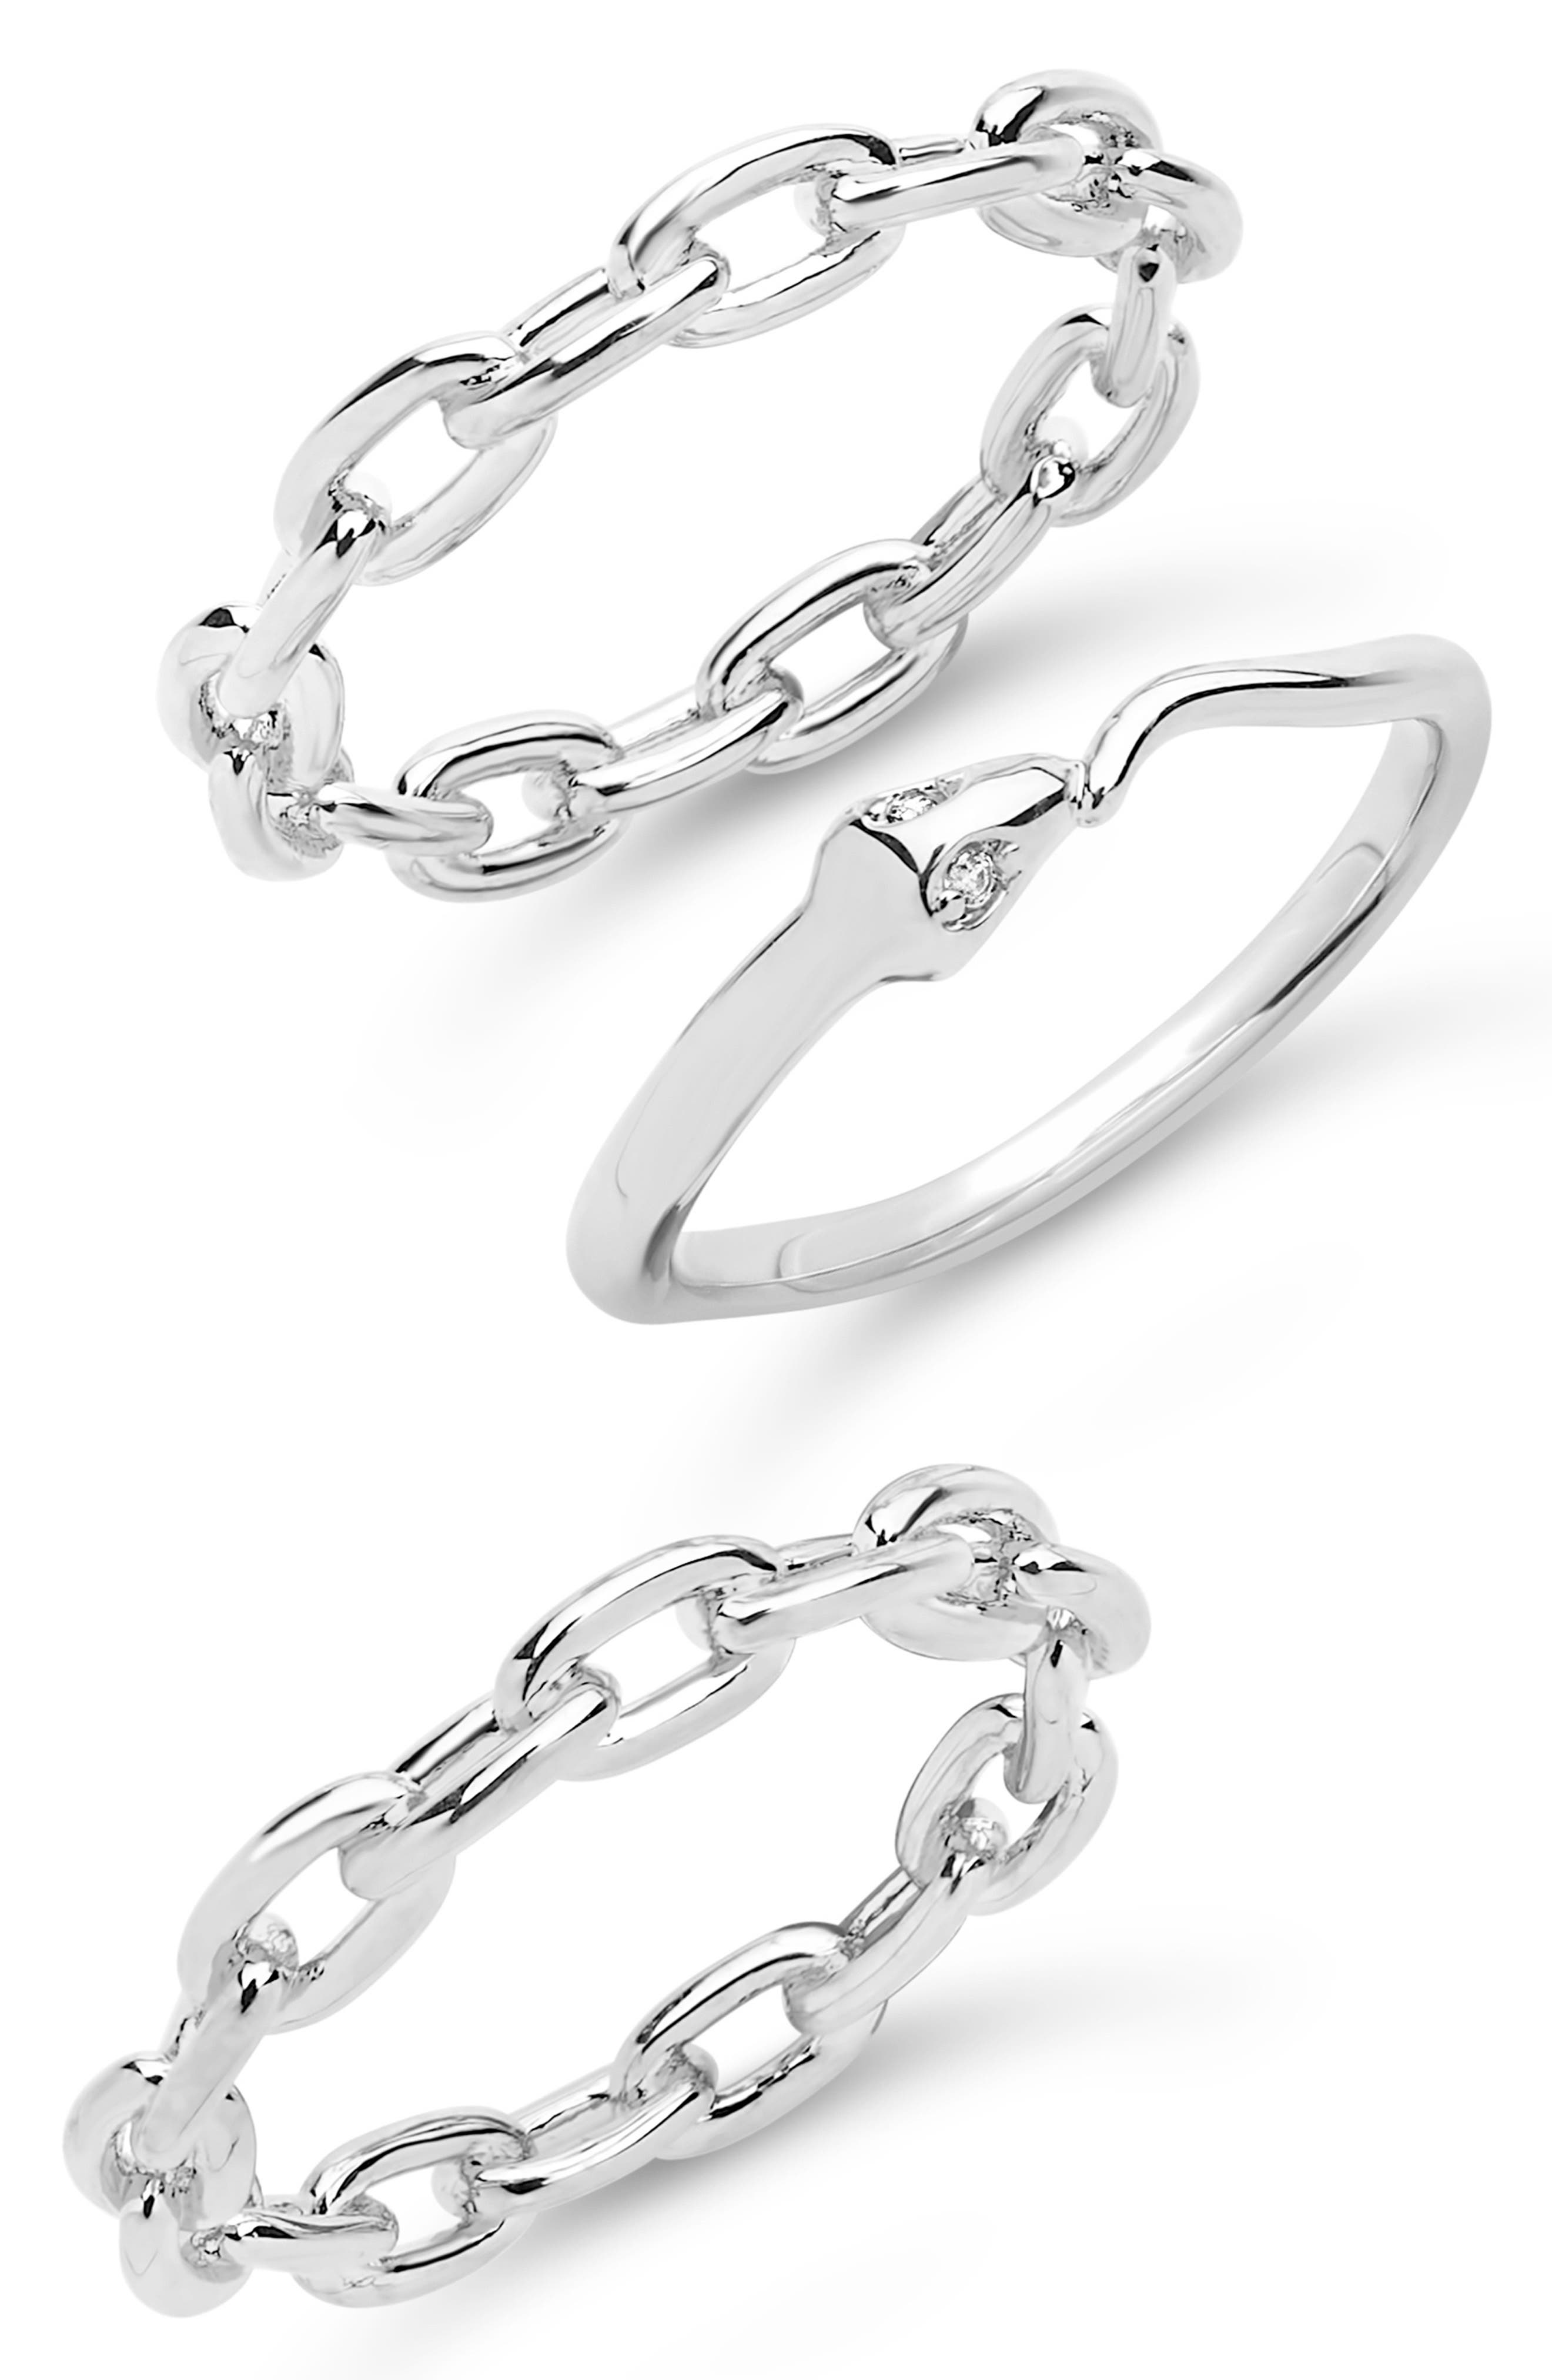 A snake with beaming cubic-zirconia eyes is the star of this rhodium-plated ring set that includes two chain-link designs. Style Name: Sterling Forever Set Of 3 Chain Snake Stacking Rings. Style Number: 6173188. Available in stores.